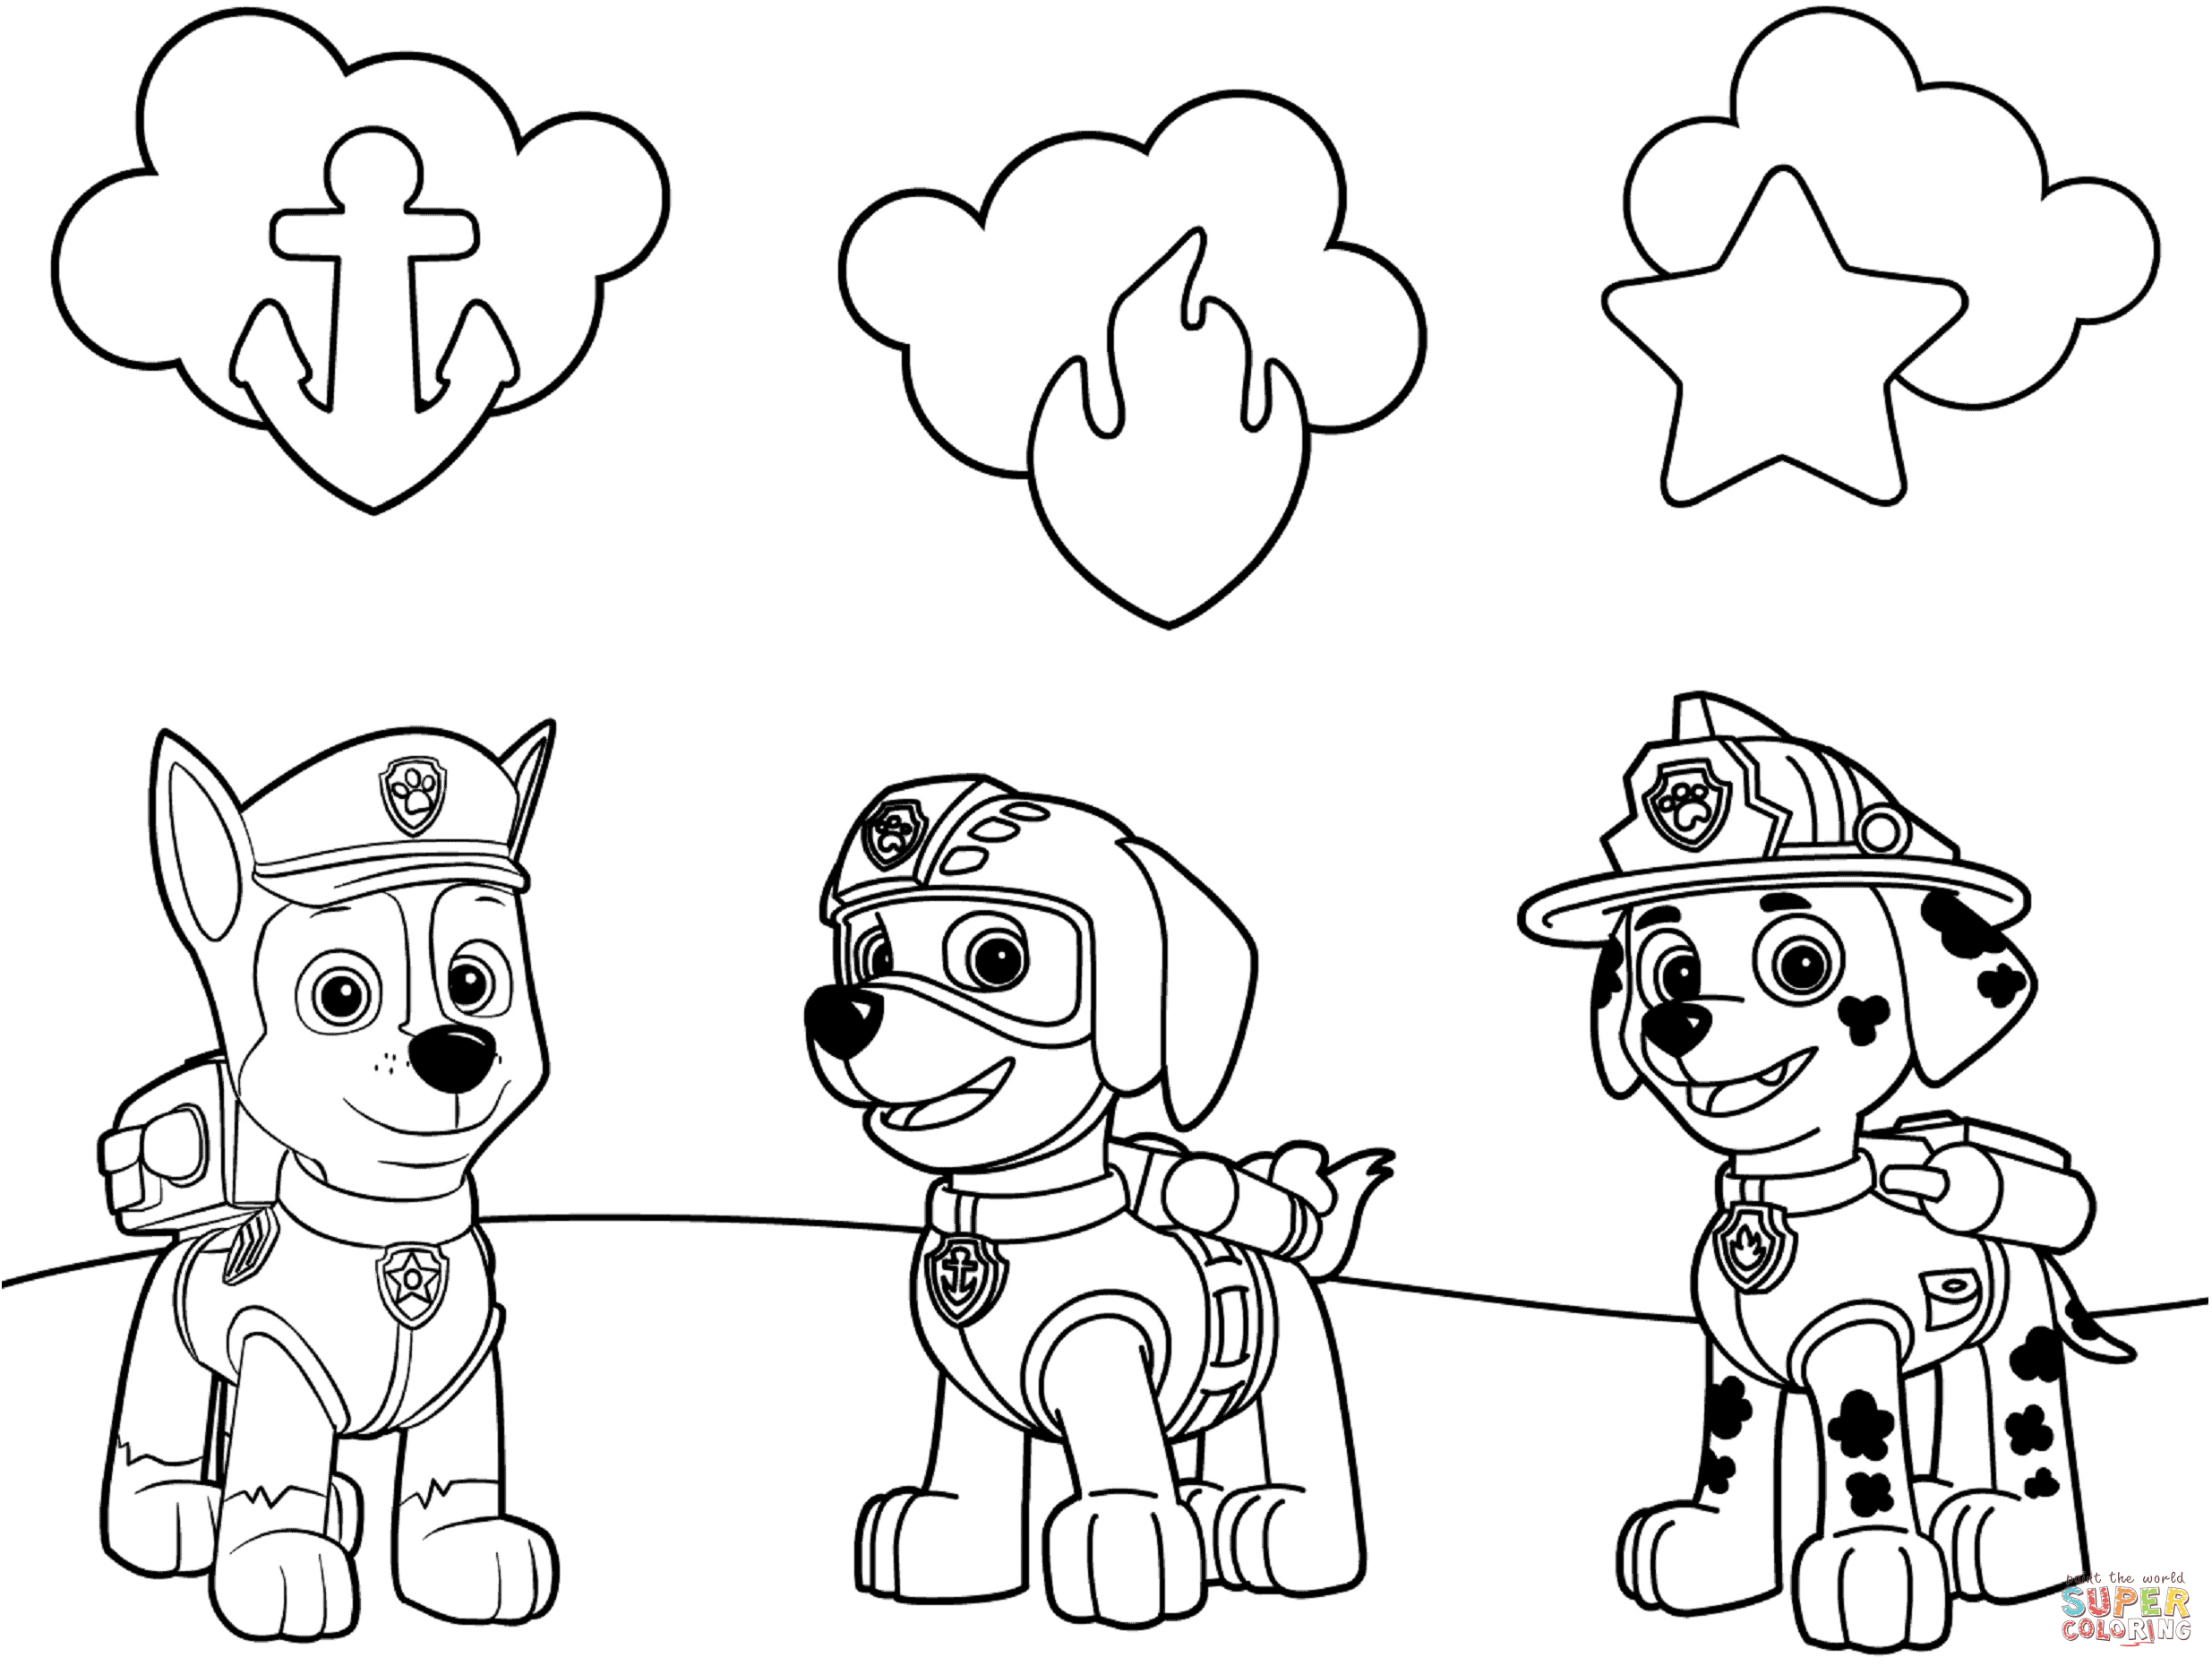 Paw patrol colouring pages free - Paw Patrol Badges Coloring Page Free Printable Coloring Pages